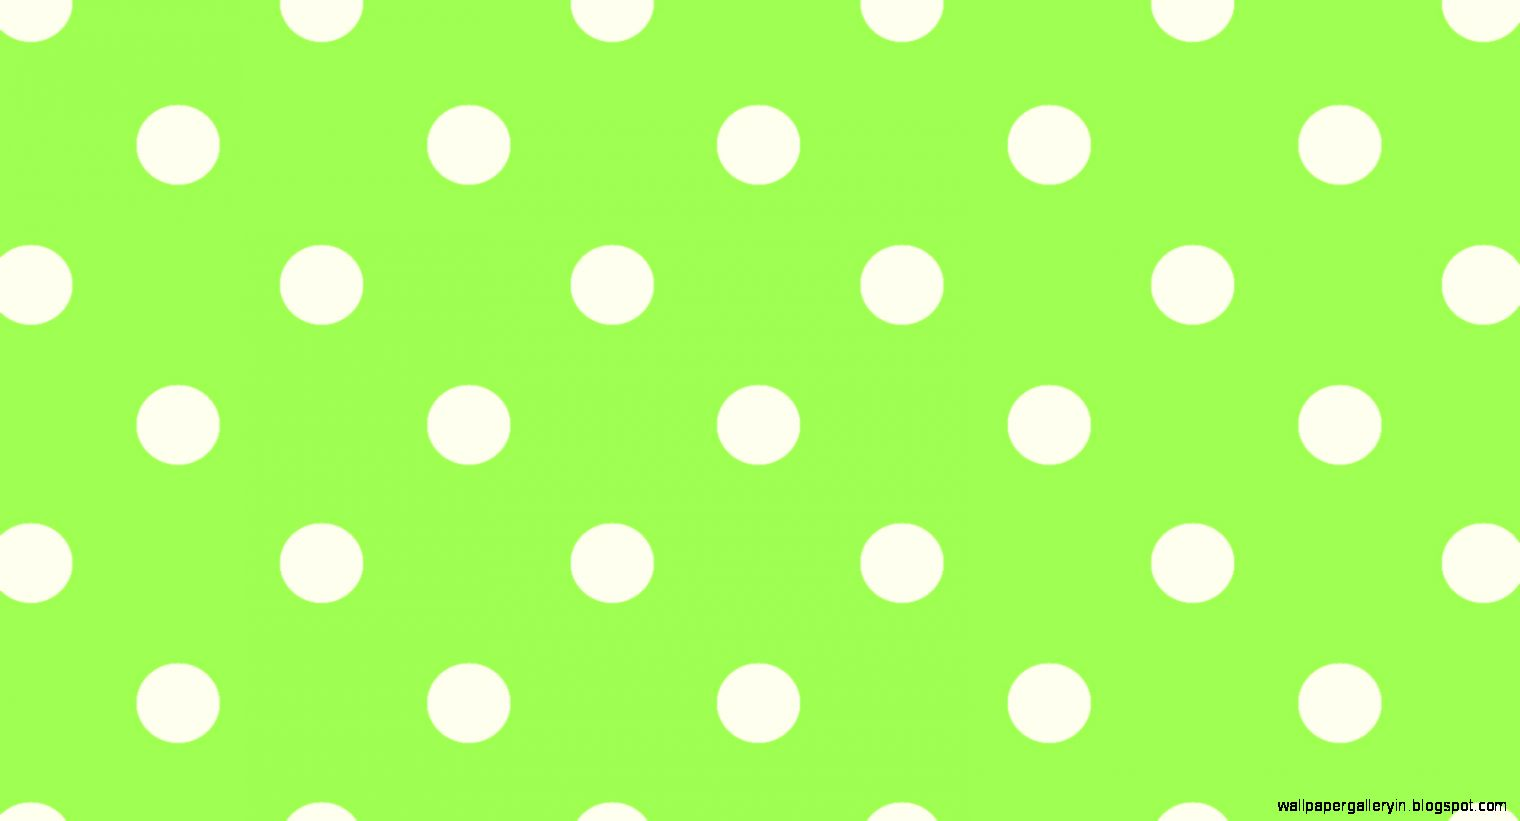 1520x821 Tail Clipart Polka Dot Free Collection Download And Share Tail